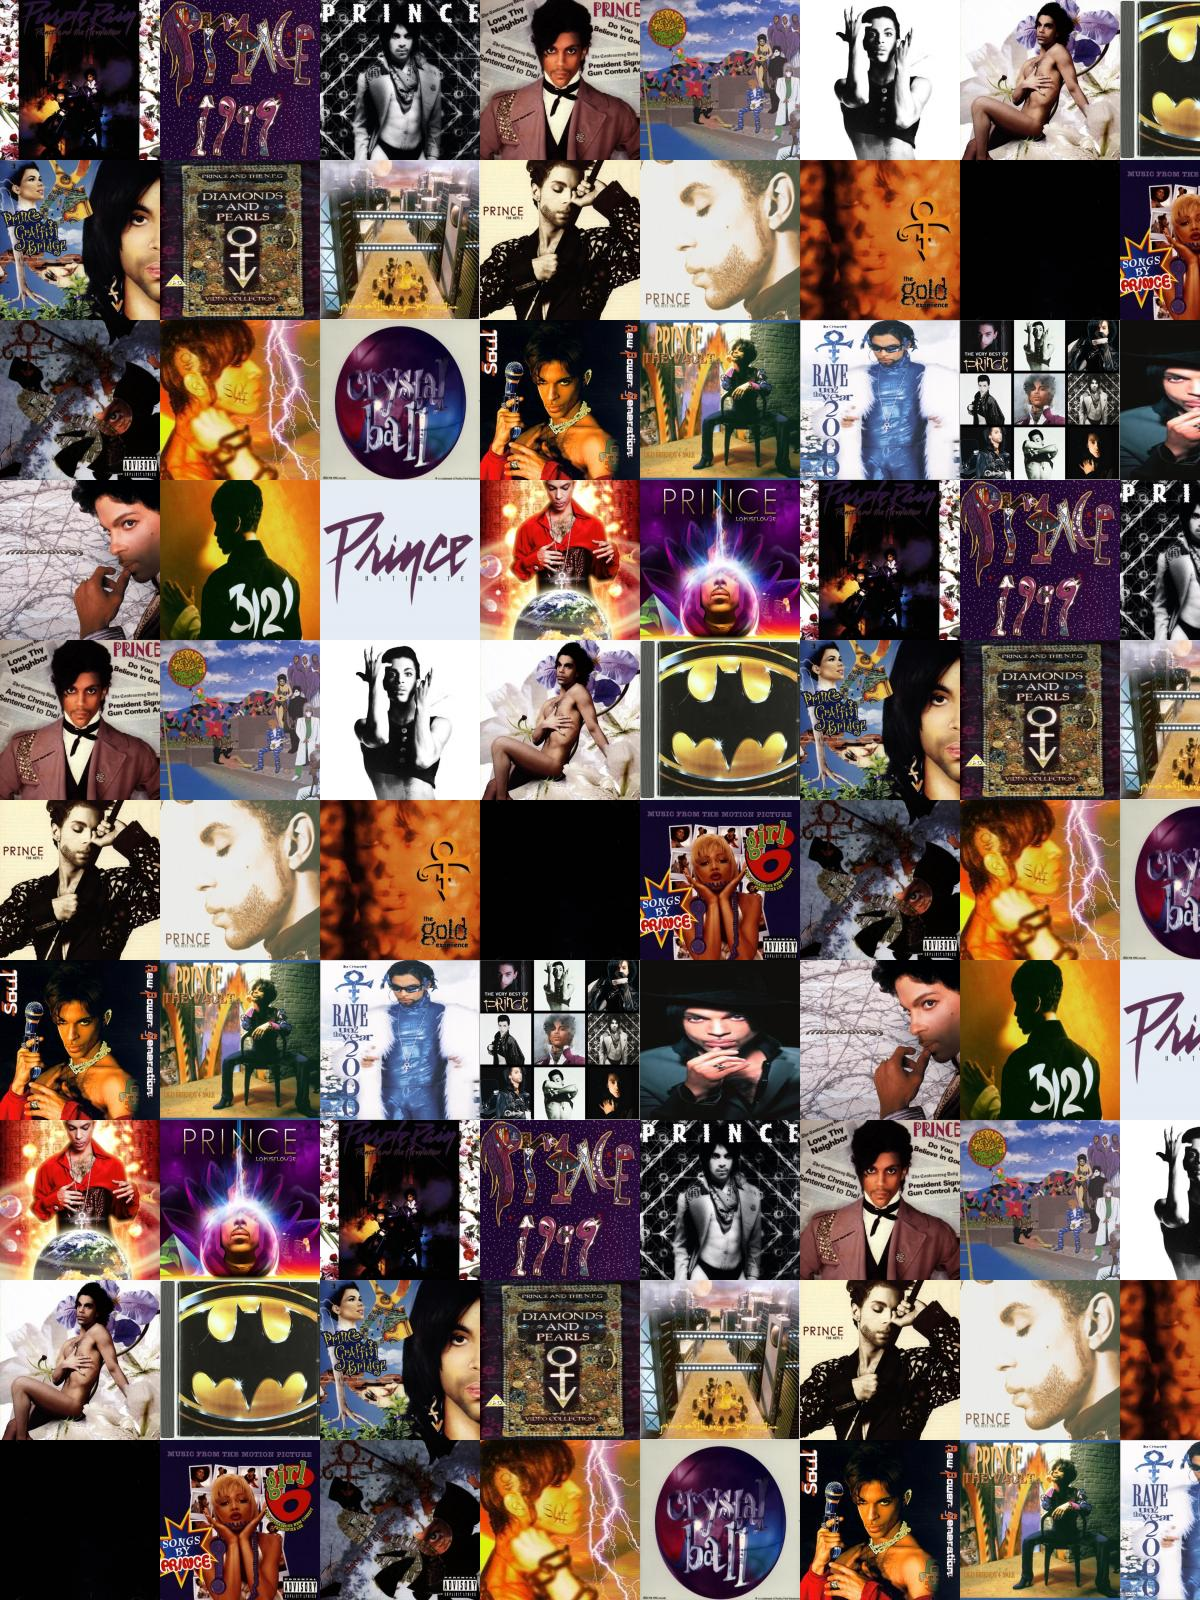 Prince purple rain 1999 dirty mind controversy around wallpaper prince purple rain 1999 dirty mind controversy around wallpaper tiled desktop wallpaper biocorpaavc Choice Image